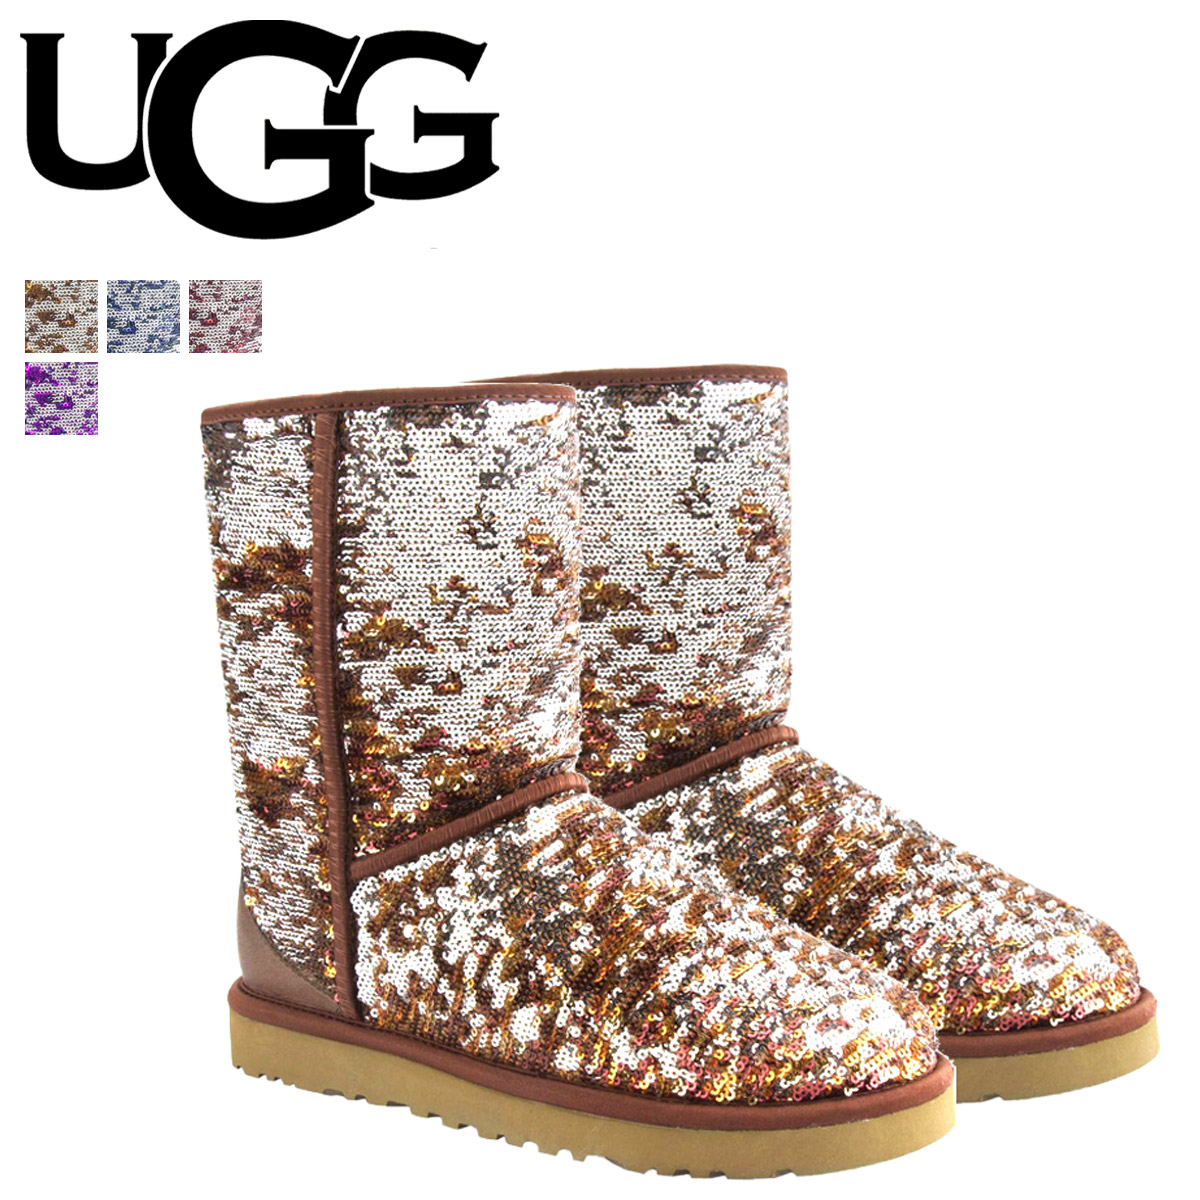 Whats up Sports | Rakuten Global Market: UGG Ugg Classic short Shearling boots WOMENS CLASSIC SHORT SPARKLES 1002766 1002765 1002978 Sheepskin ladies